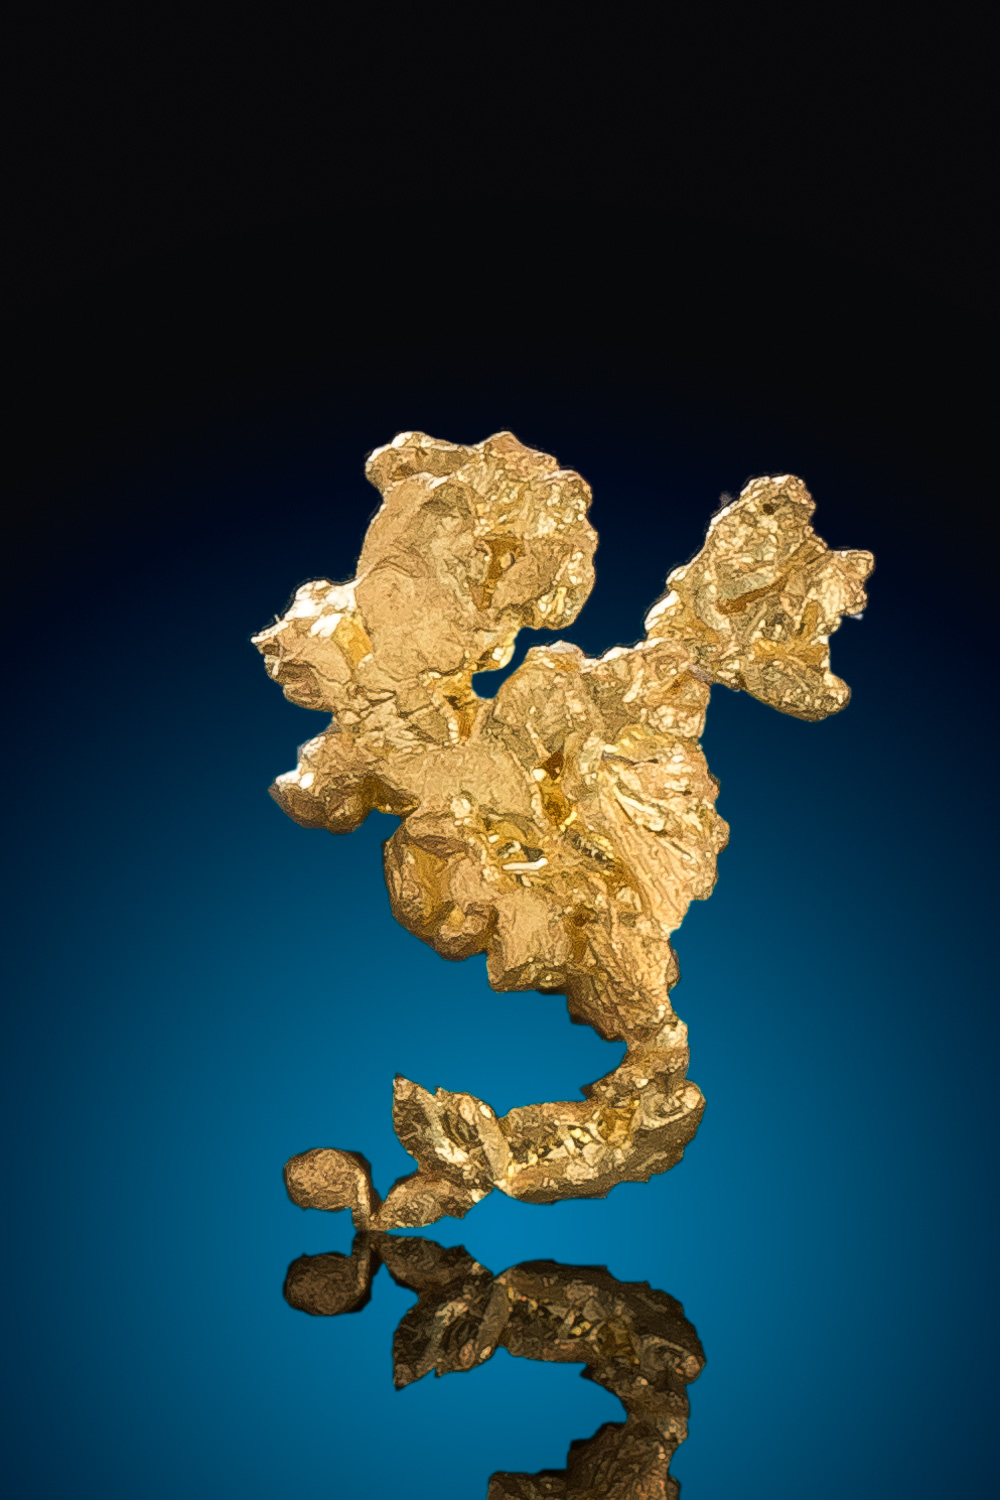 Uniquely Shaped Crystalline Gold Specimen - Eagles Nest Mine